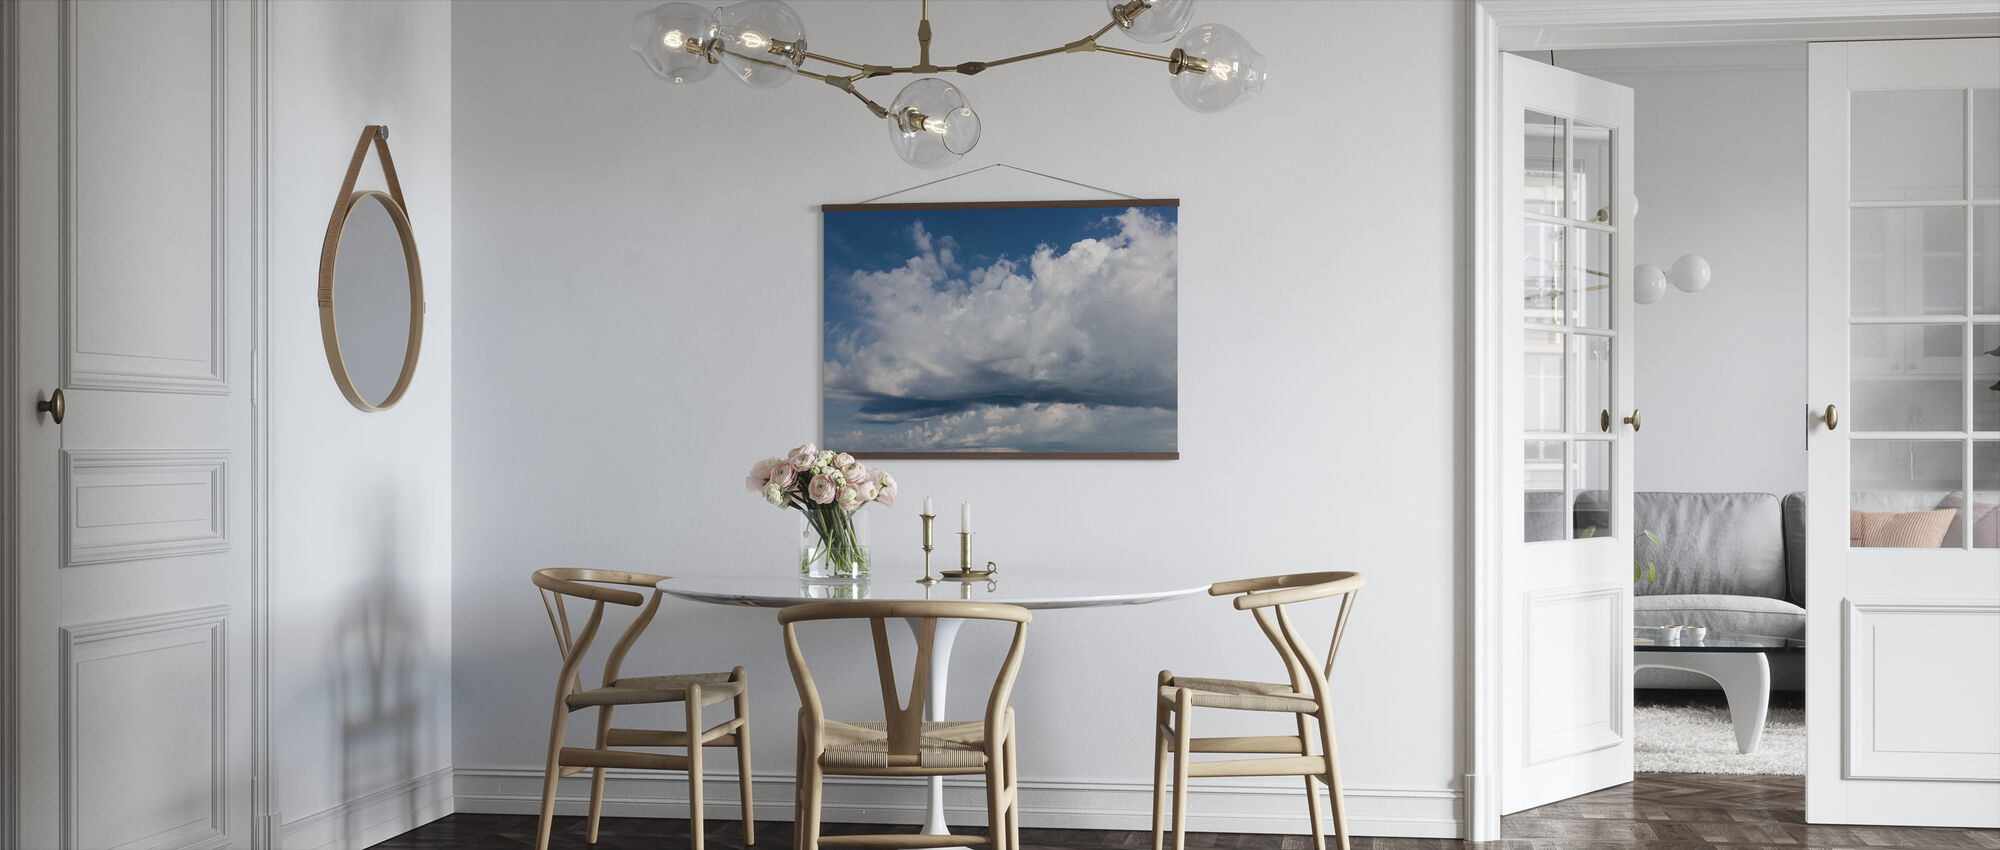 Cloudy Sky - Poster - Kitchen